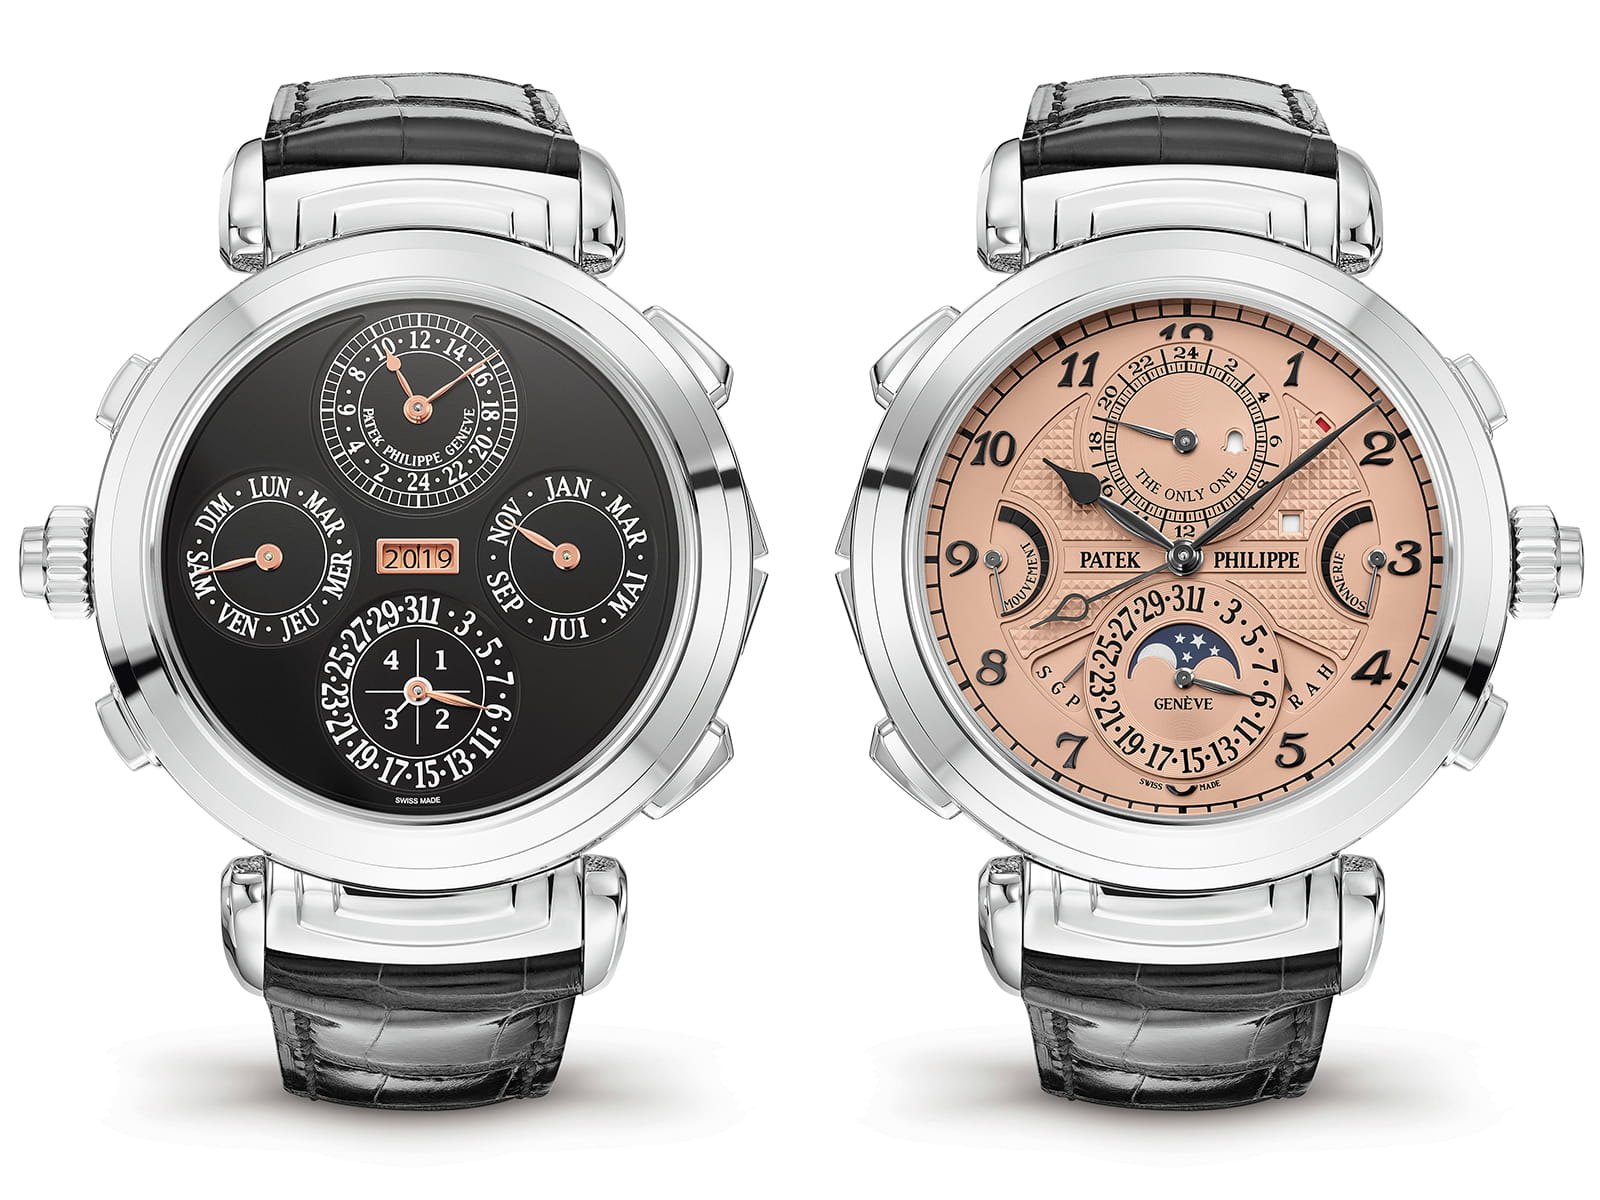 6300a-010-patek-philippe-6300a-steel-grandmaster-chime-only-watch-2019-1.jpg